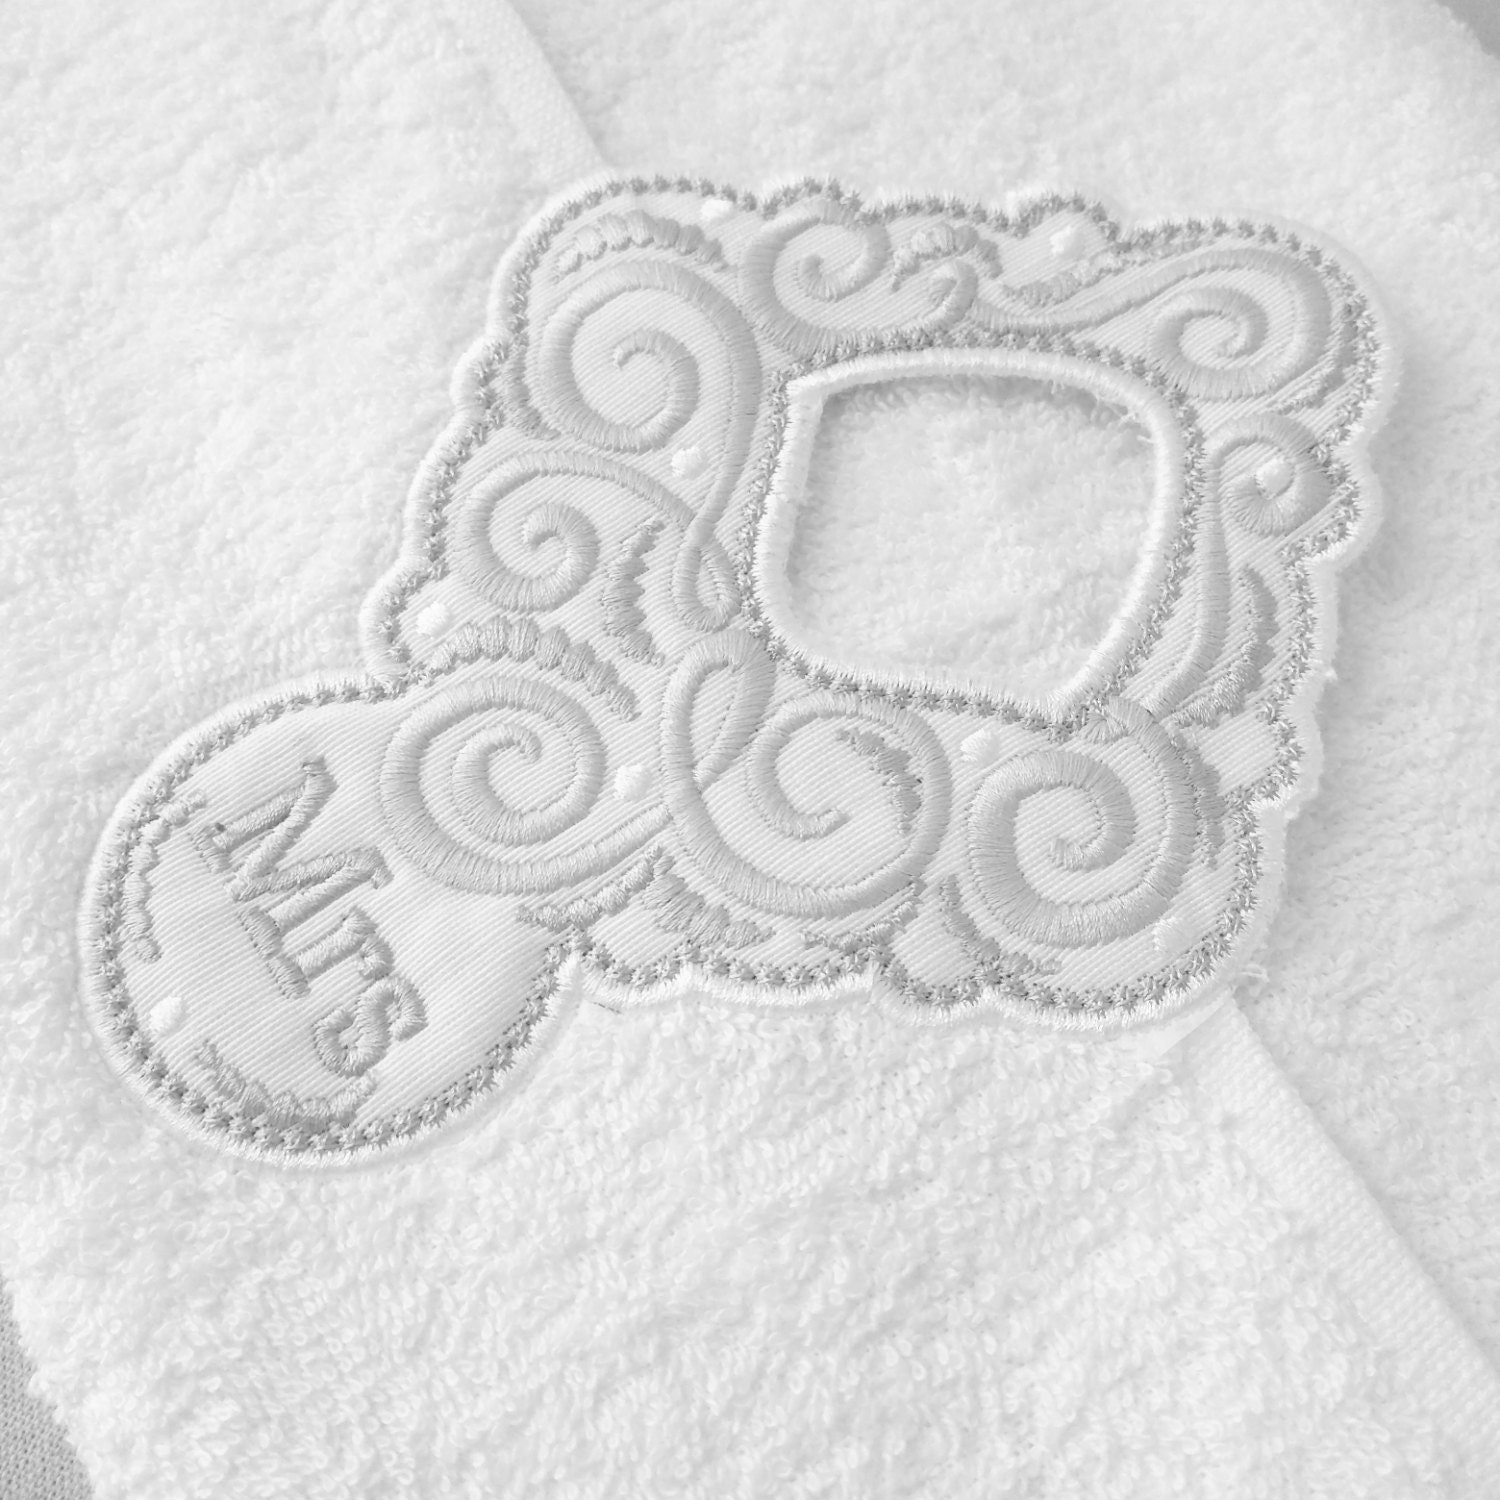 Wedding gift mr and mrs towel hanging hole made to mach